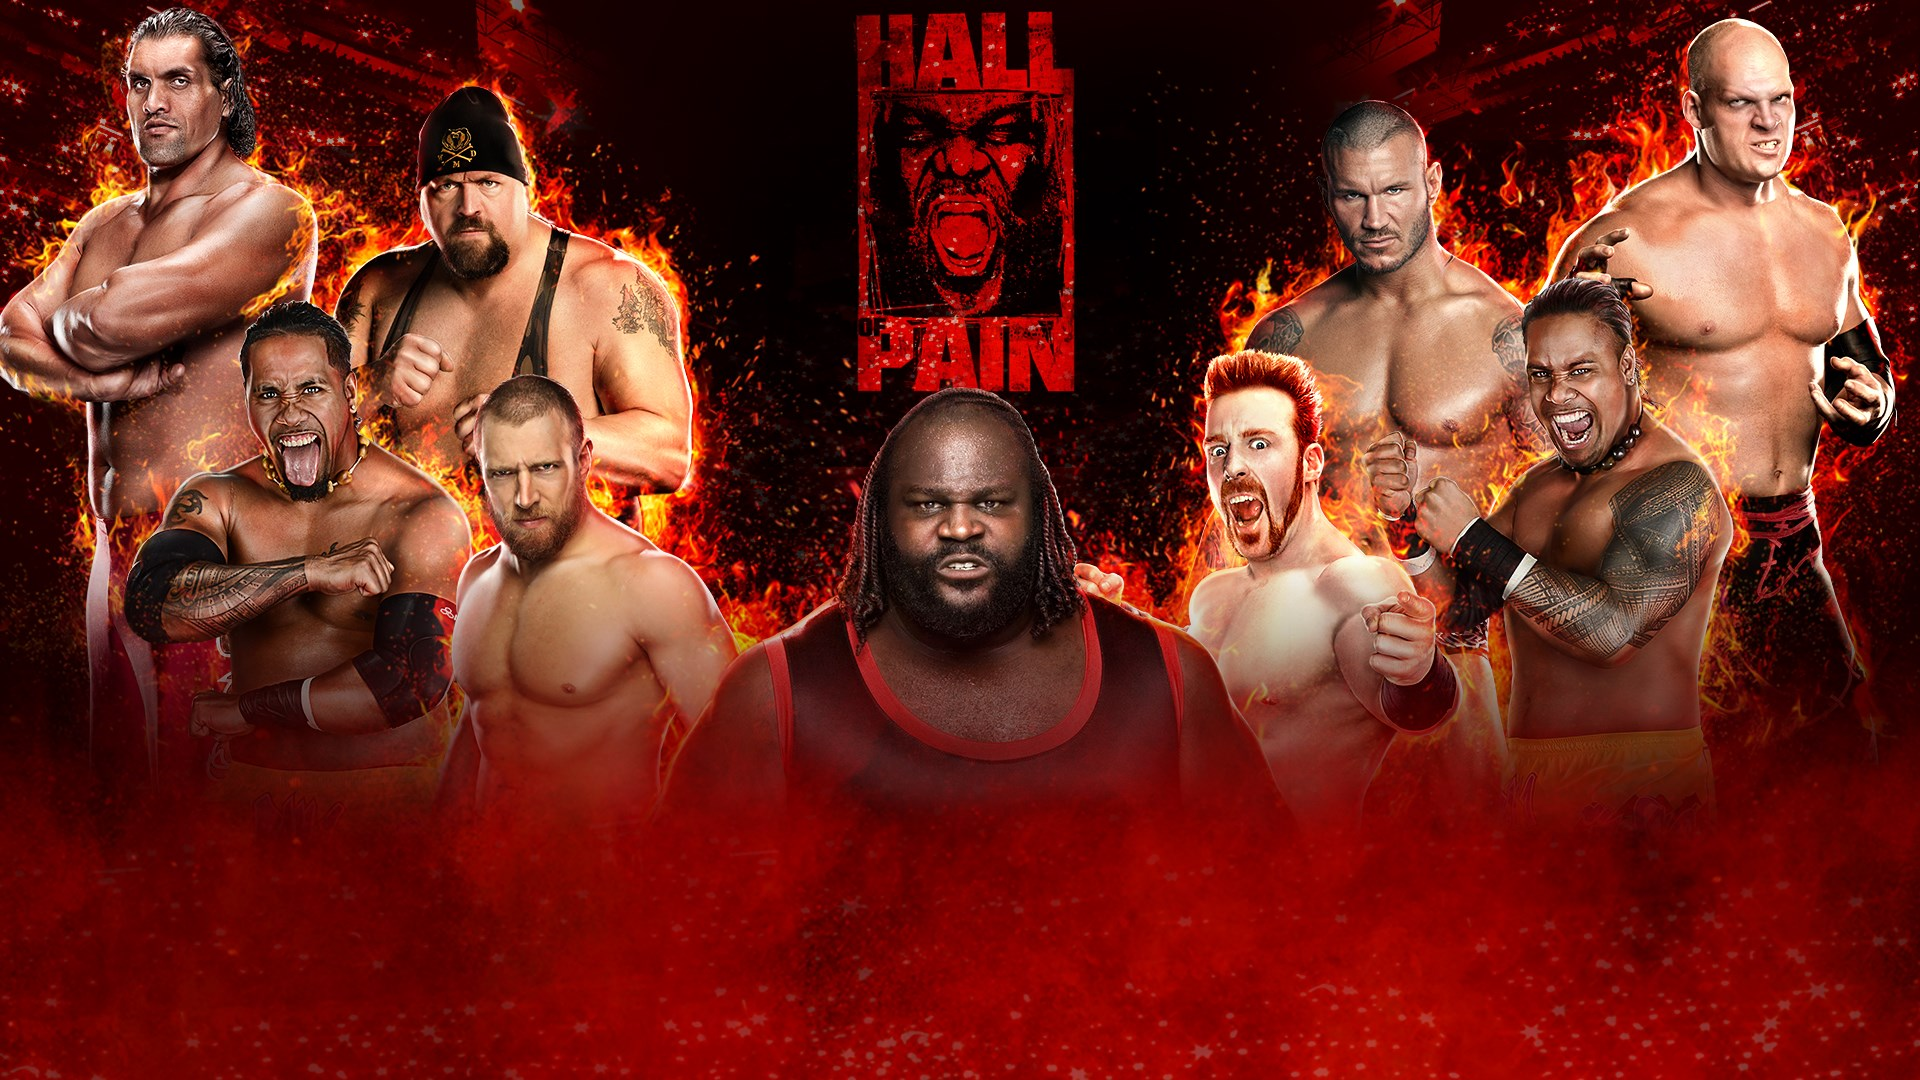 Hall of Pain